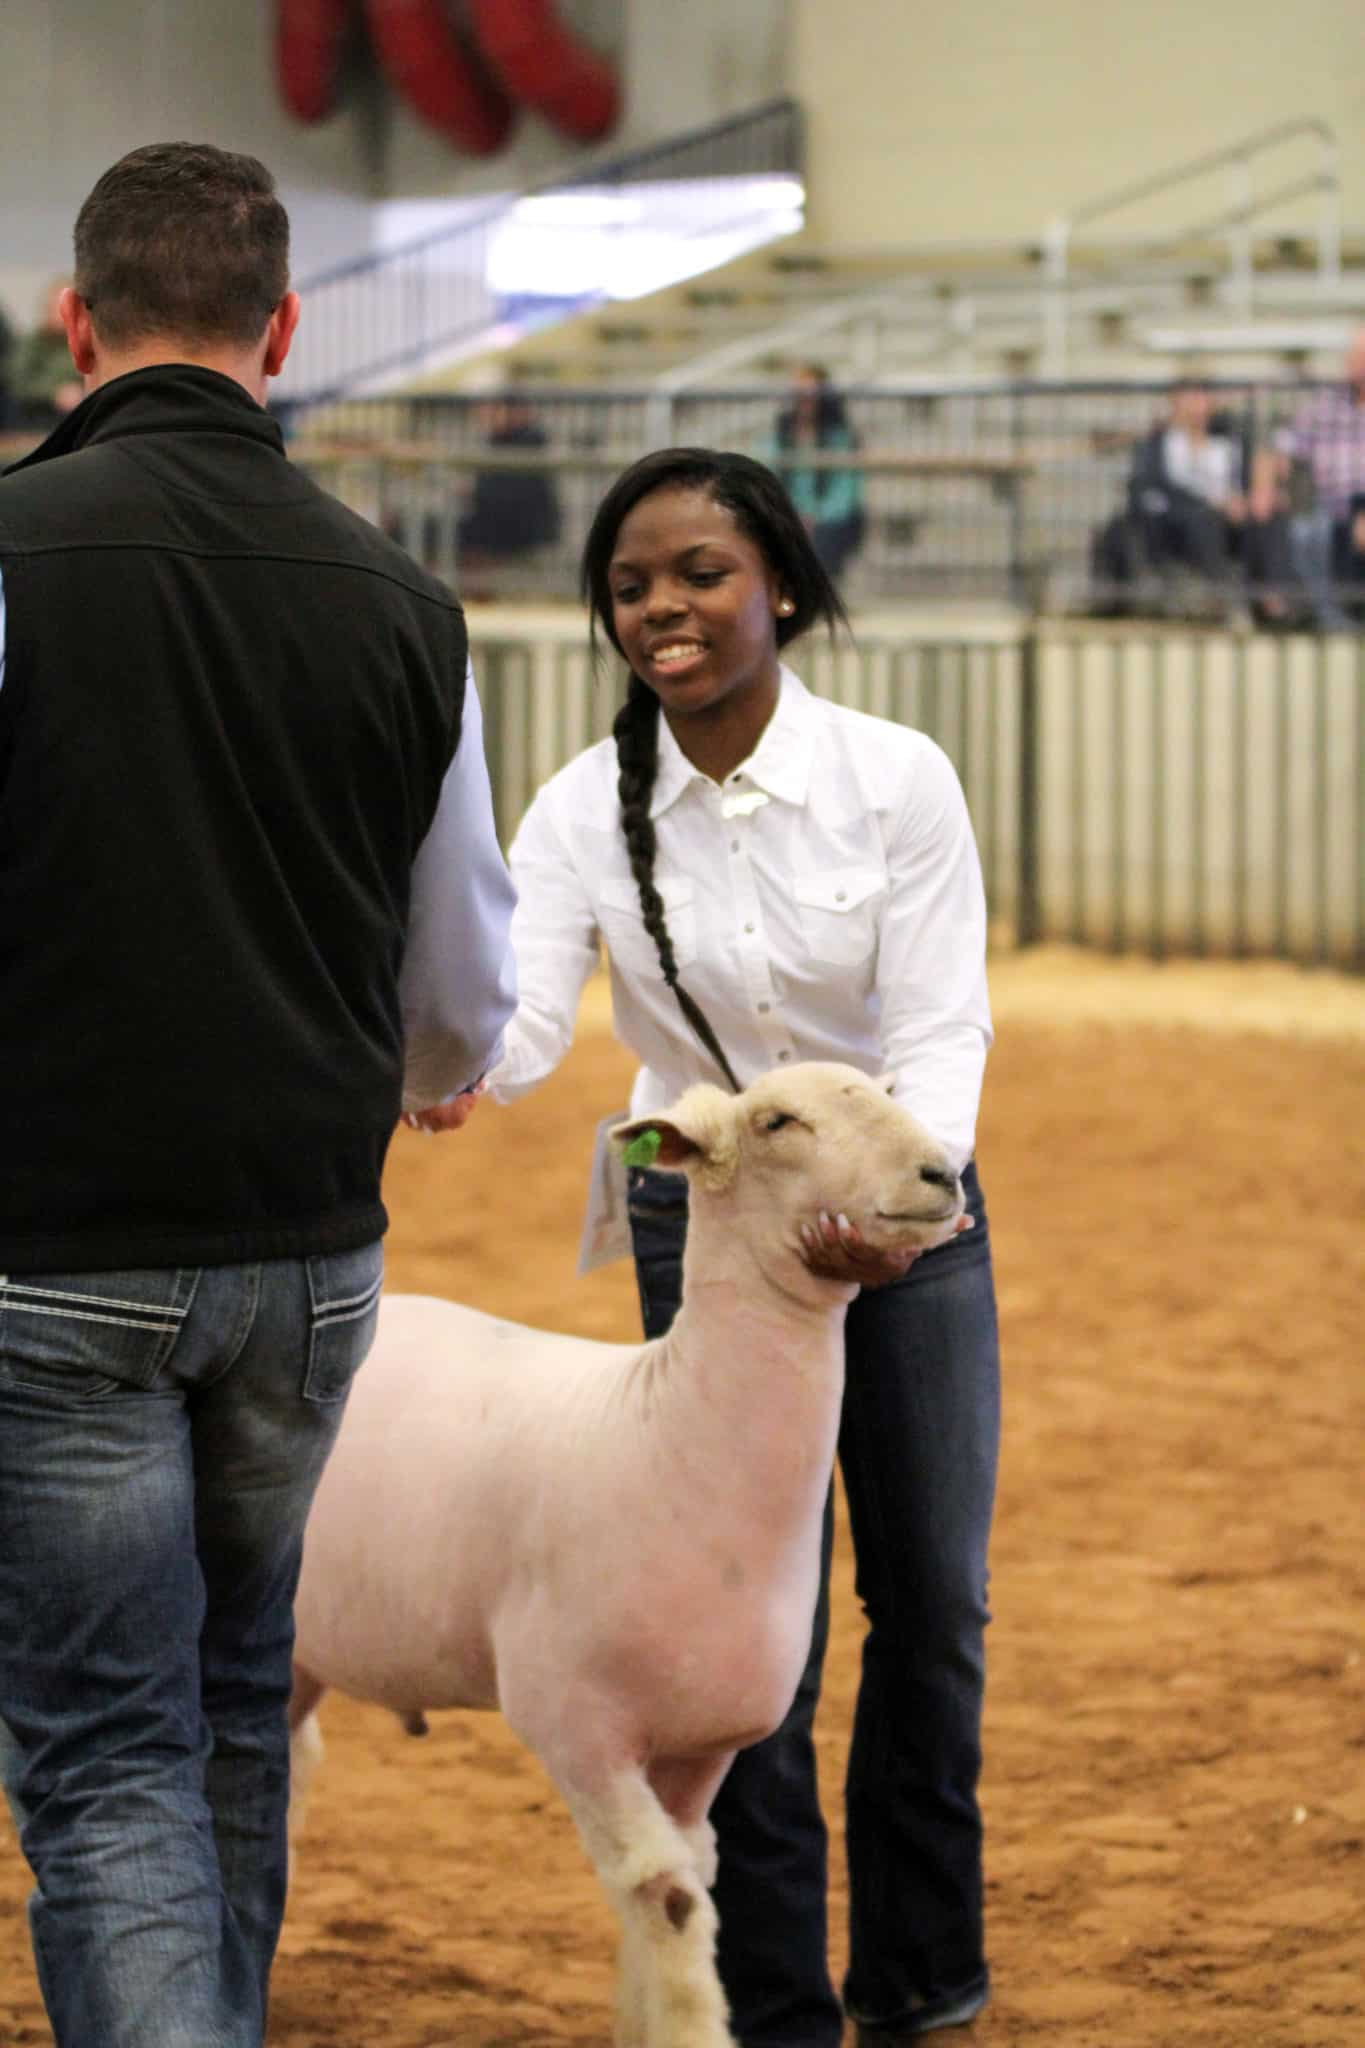 FFA Student Showing Sheep